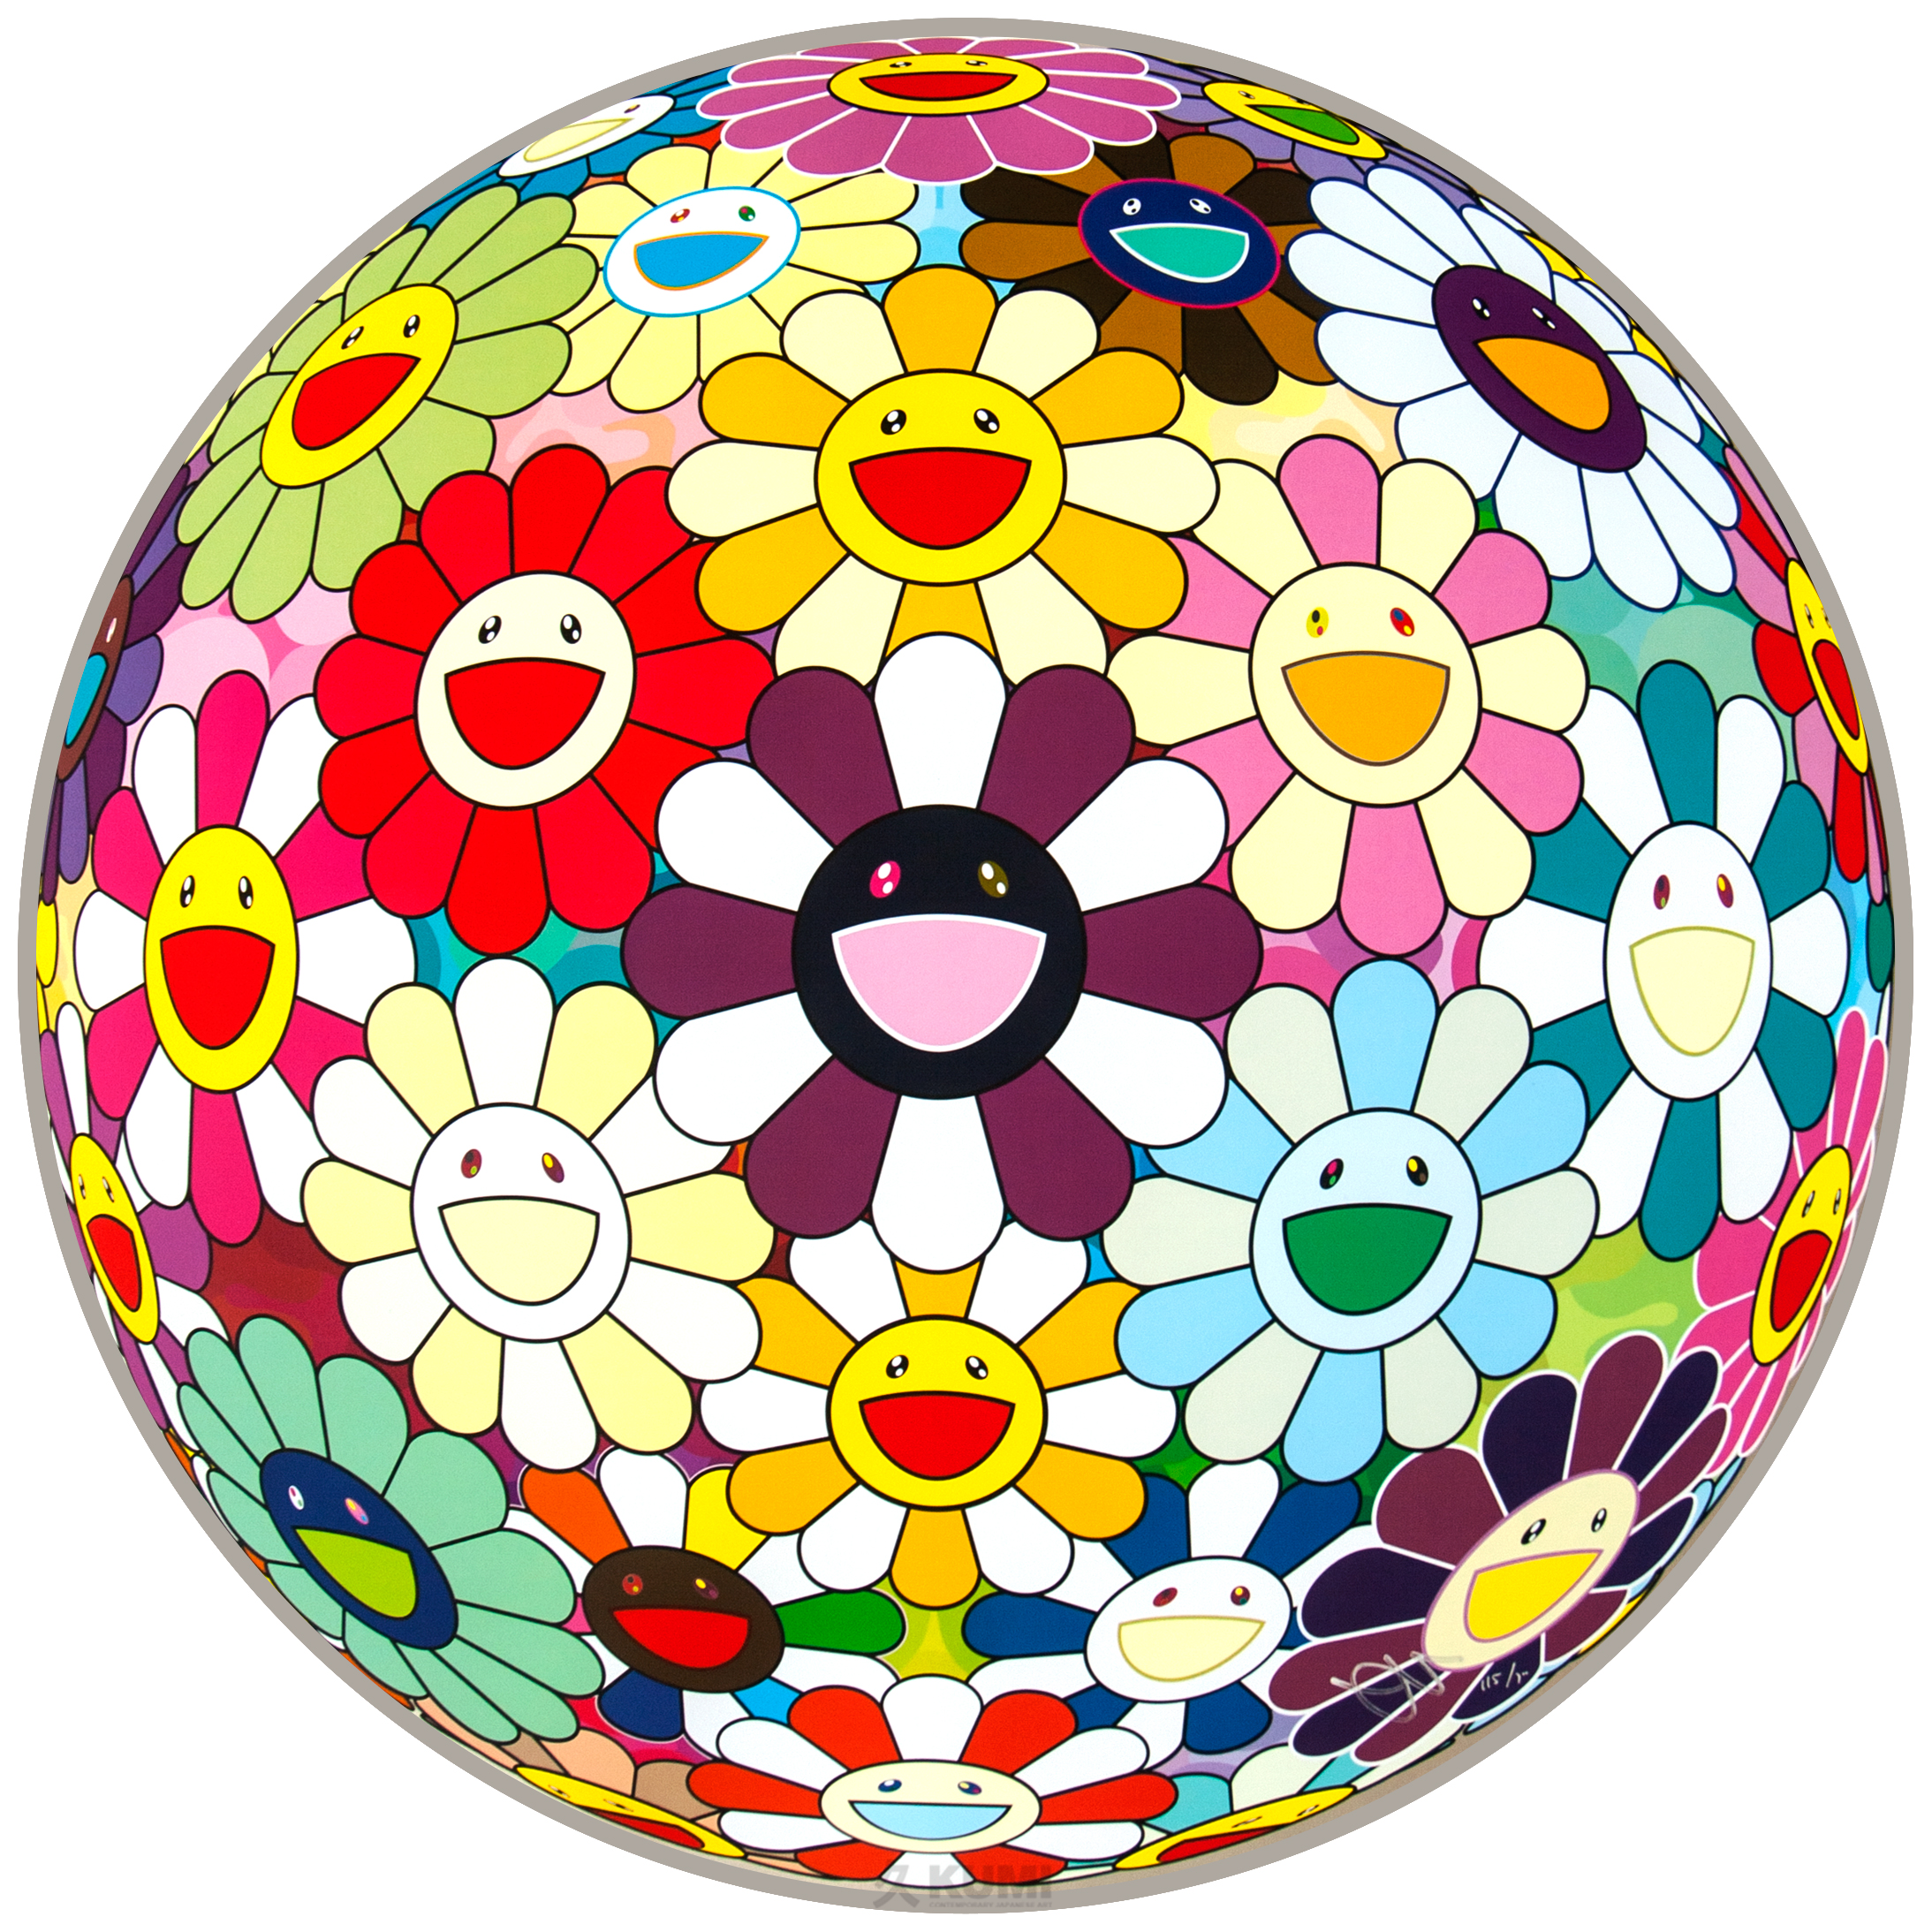 Takashi Murakami: Flower Ball (Sexual Violet)